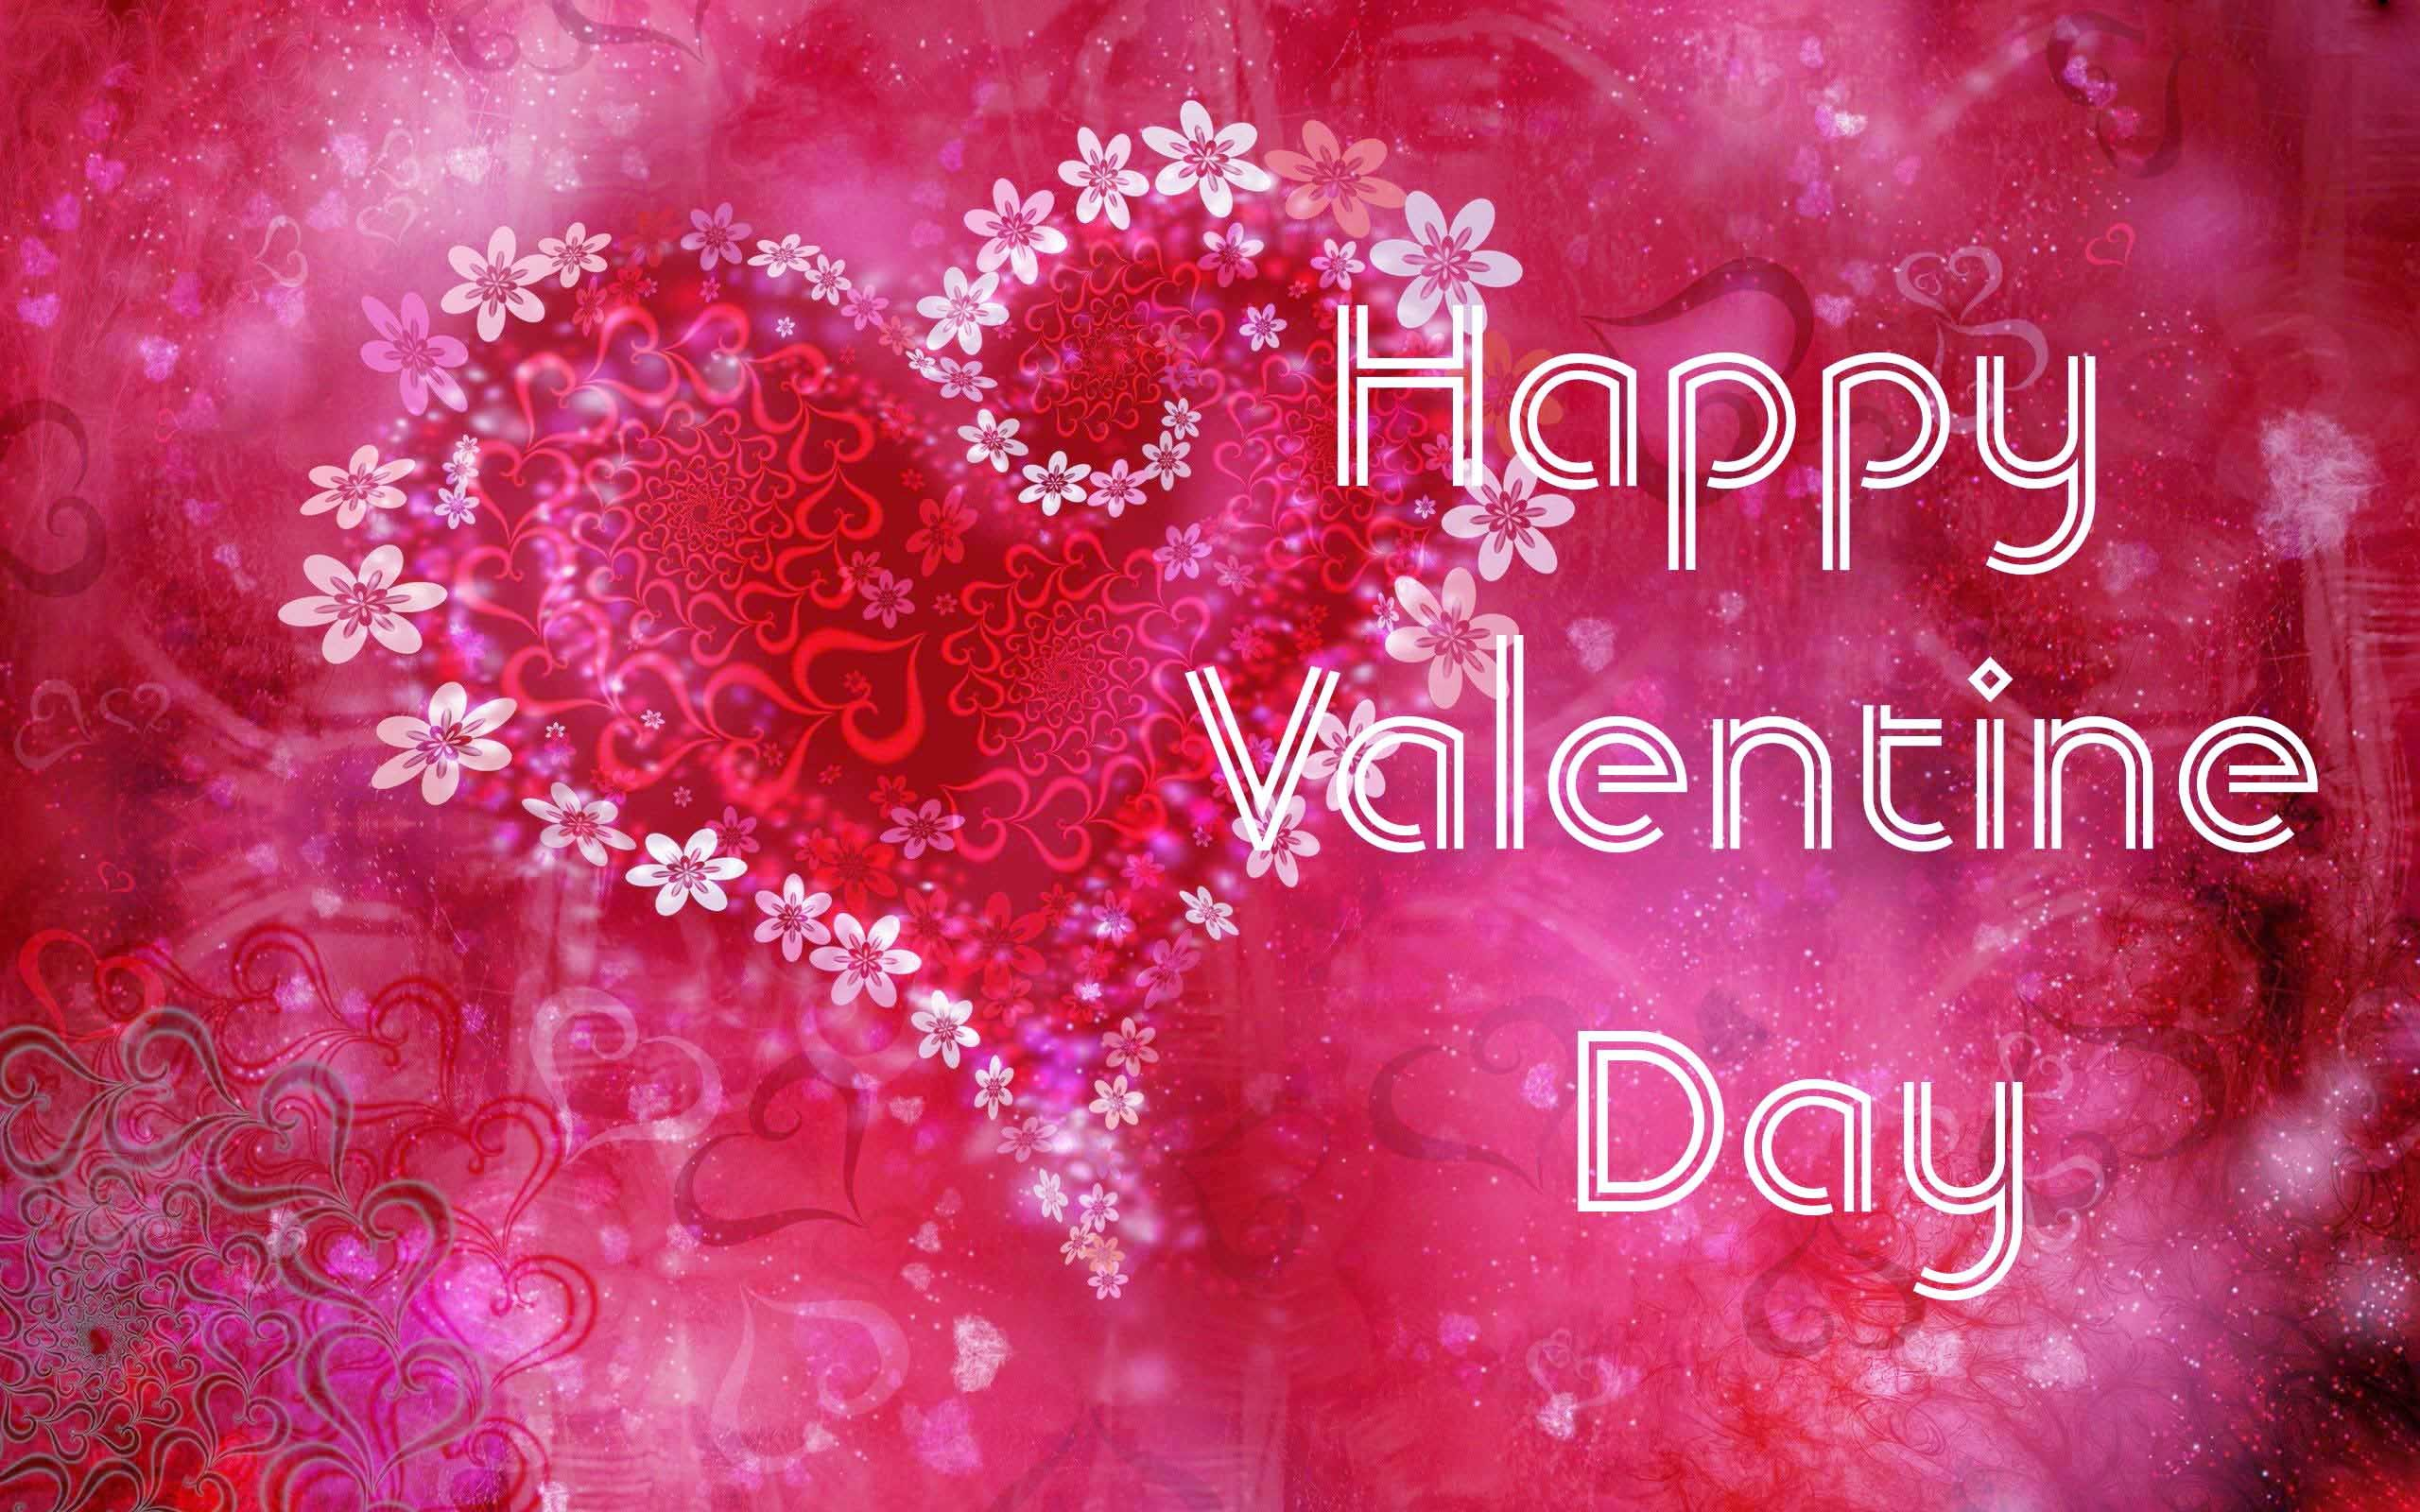 happy valentines desktop hd free background wallpaper